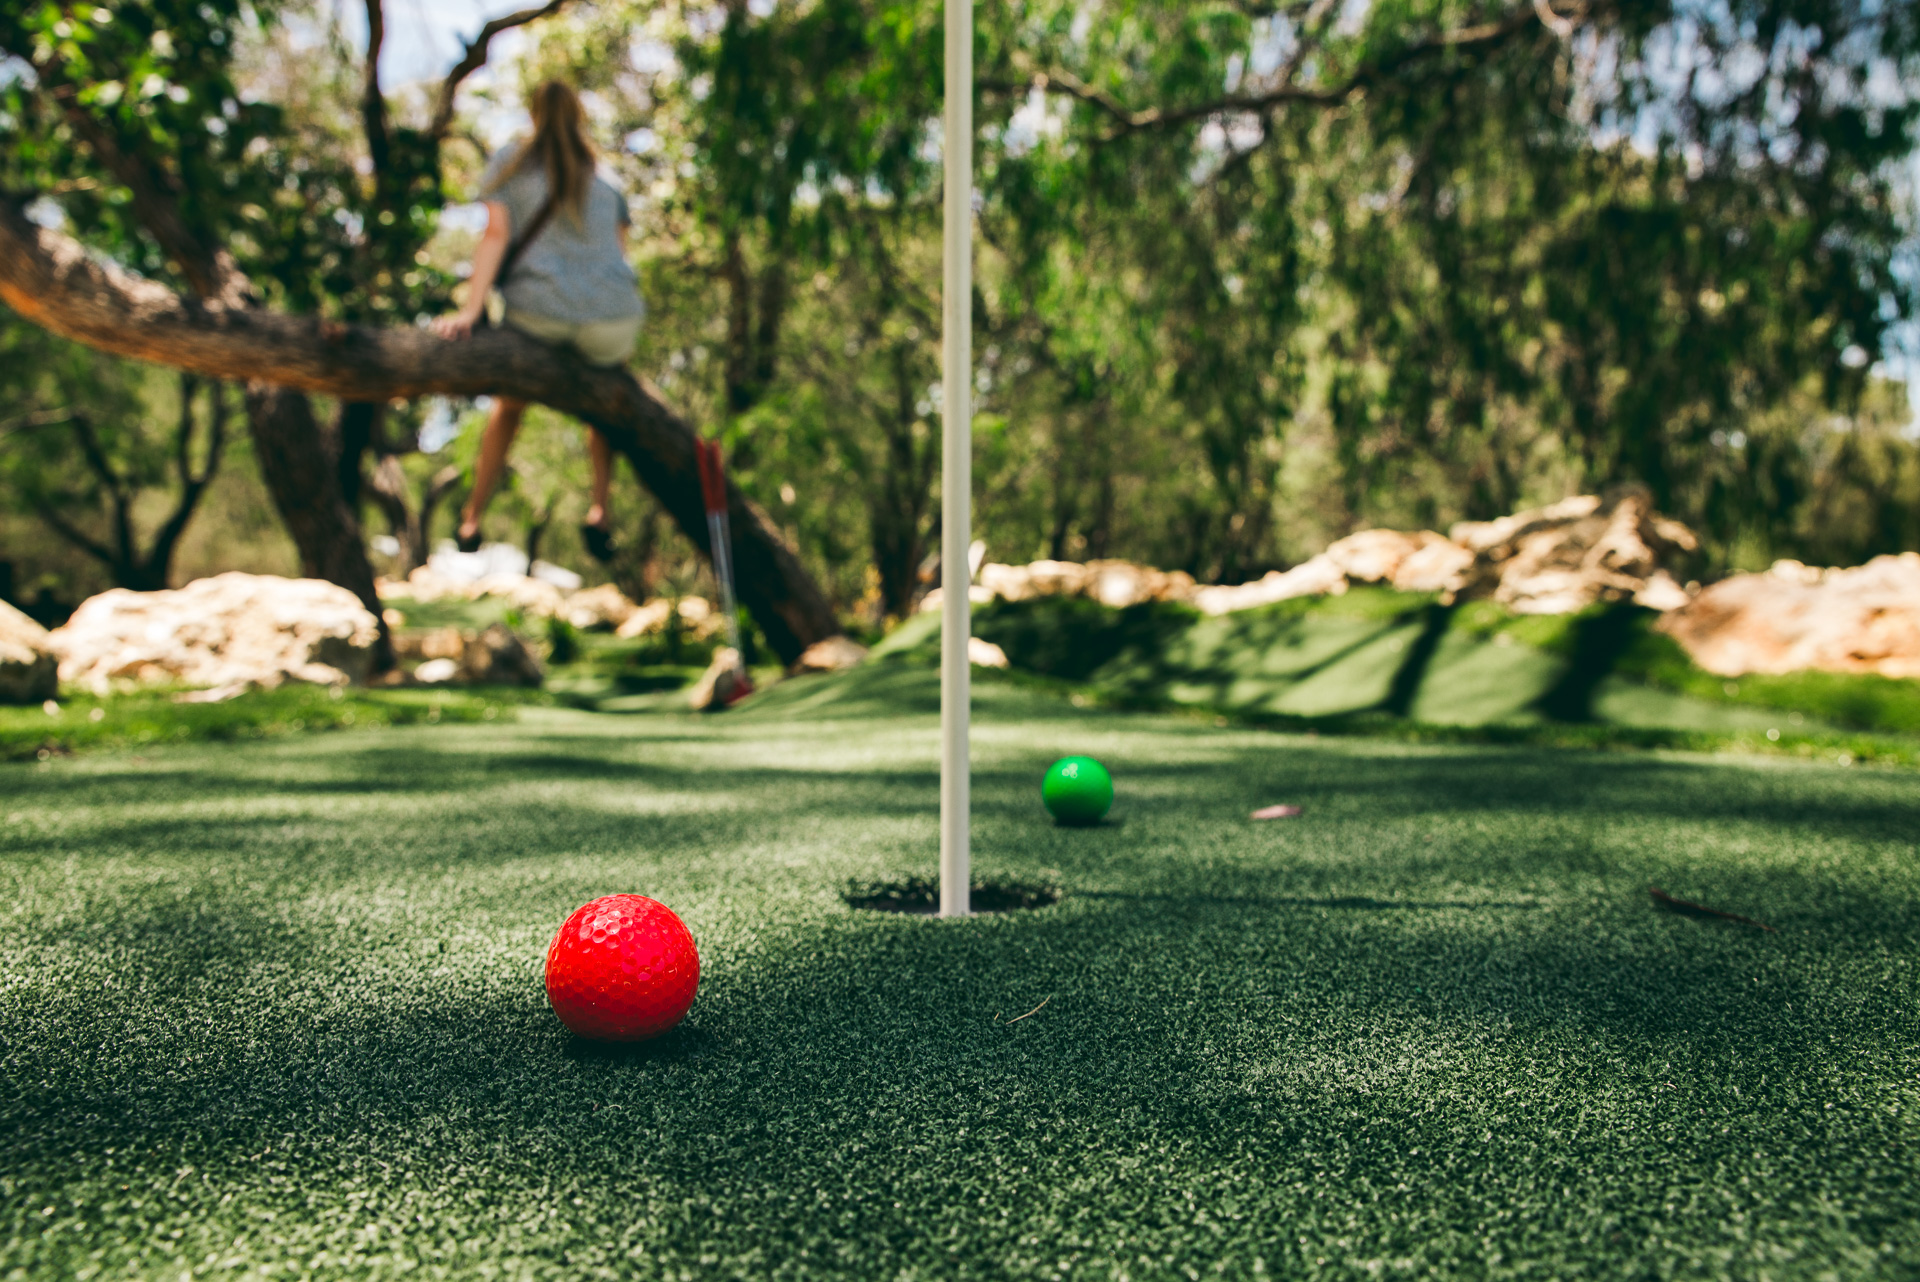 Mini Golf Margaret River | The Par 3 | Things to do In Margaret River. Best Mini Golf Margaret River. Mini Golf Dunsborough. #minigolf #golf #margaretriver